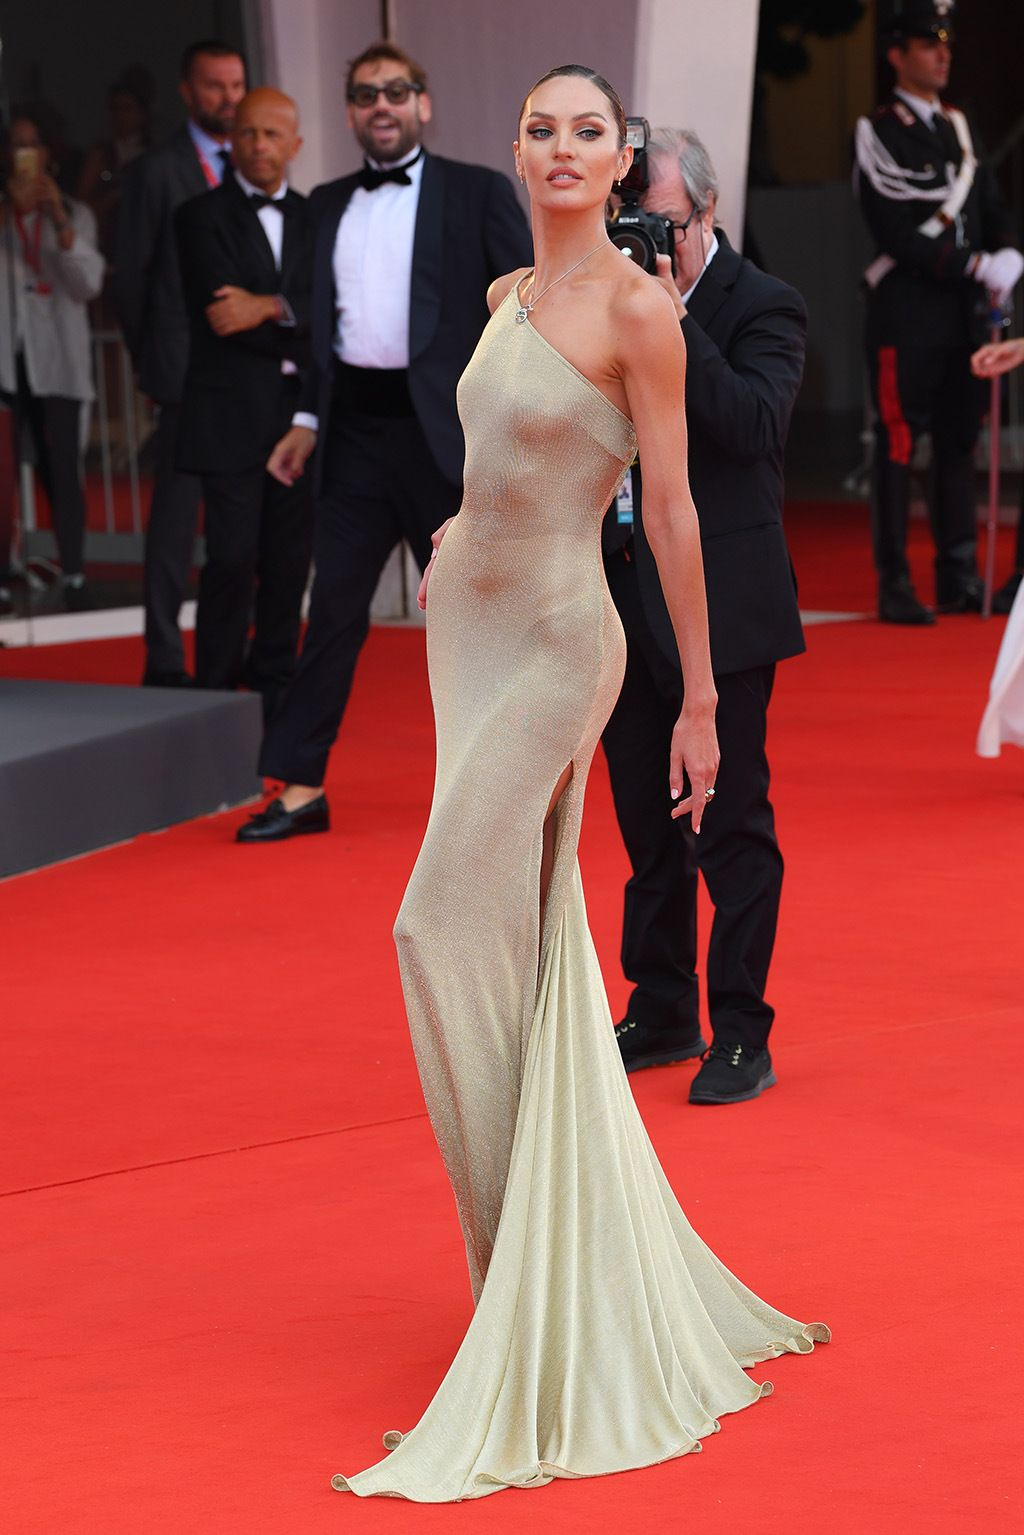 Photo of Sofia Richie, Candice Swanepoel + Other celebrities at the Venice Film Festival 2019